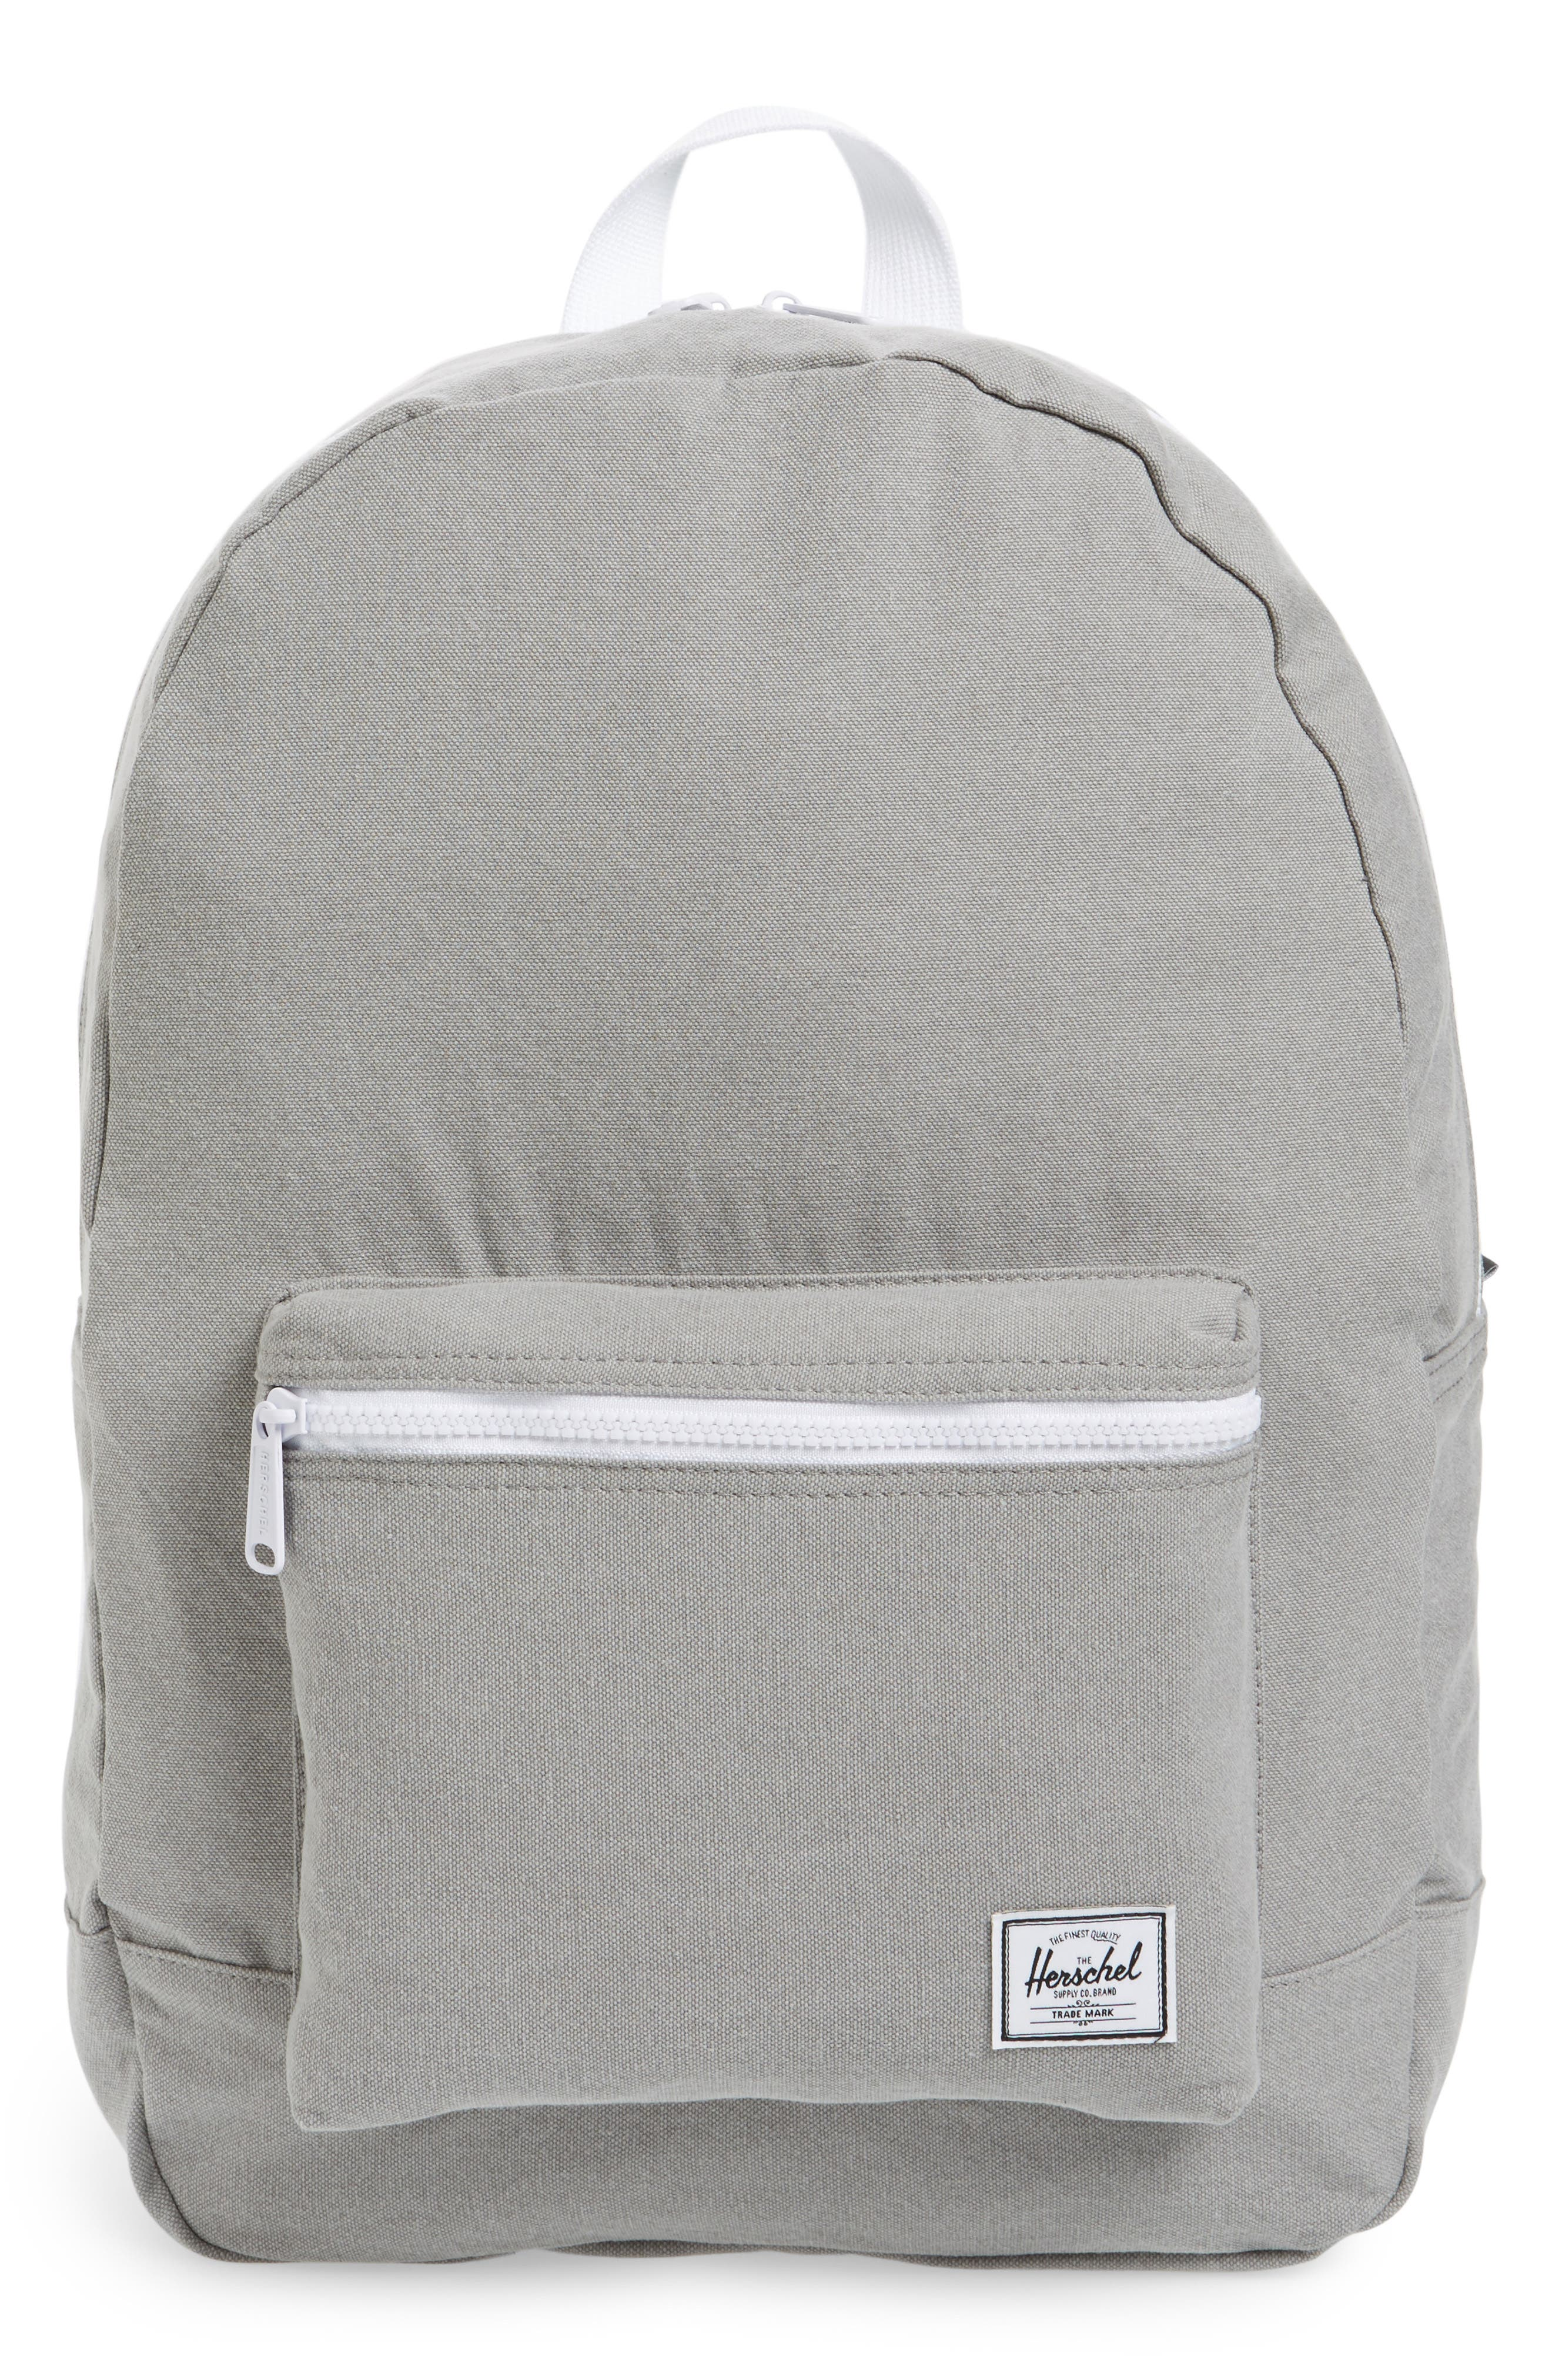 Cotton Casuals Daypack Backpack,                             Main thumbnail 5, color,